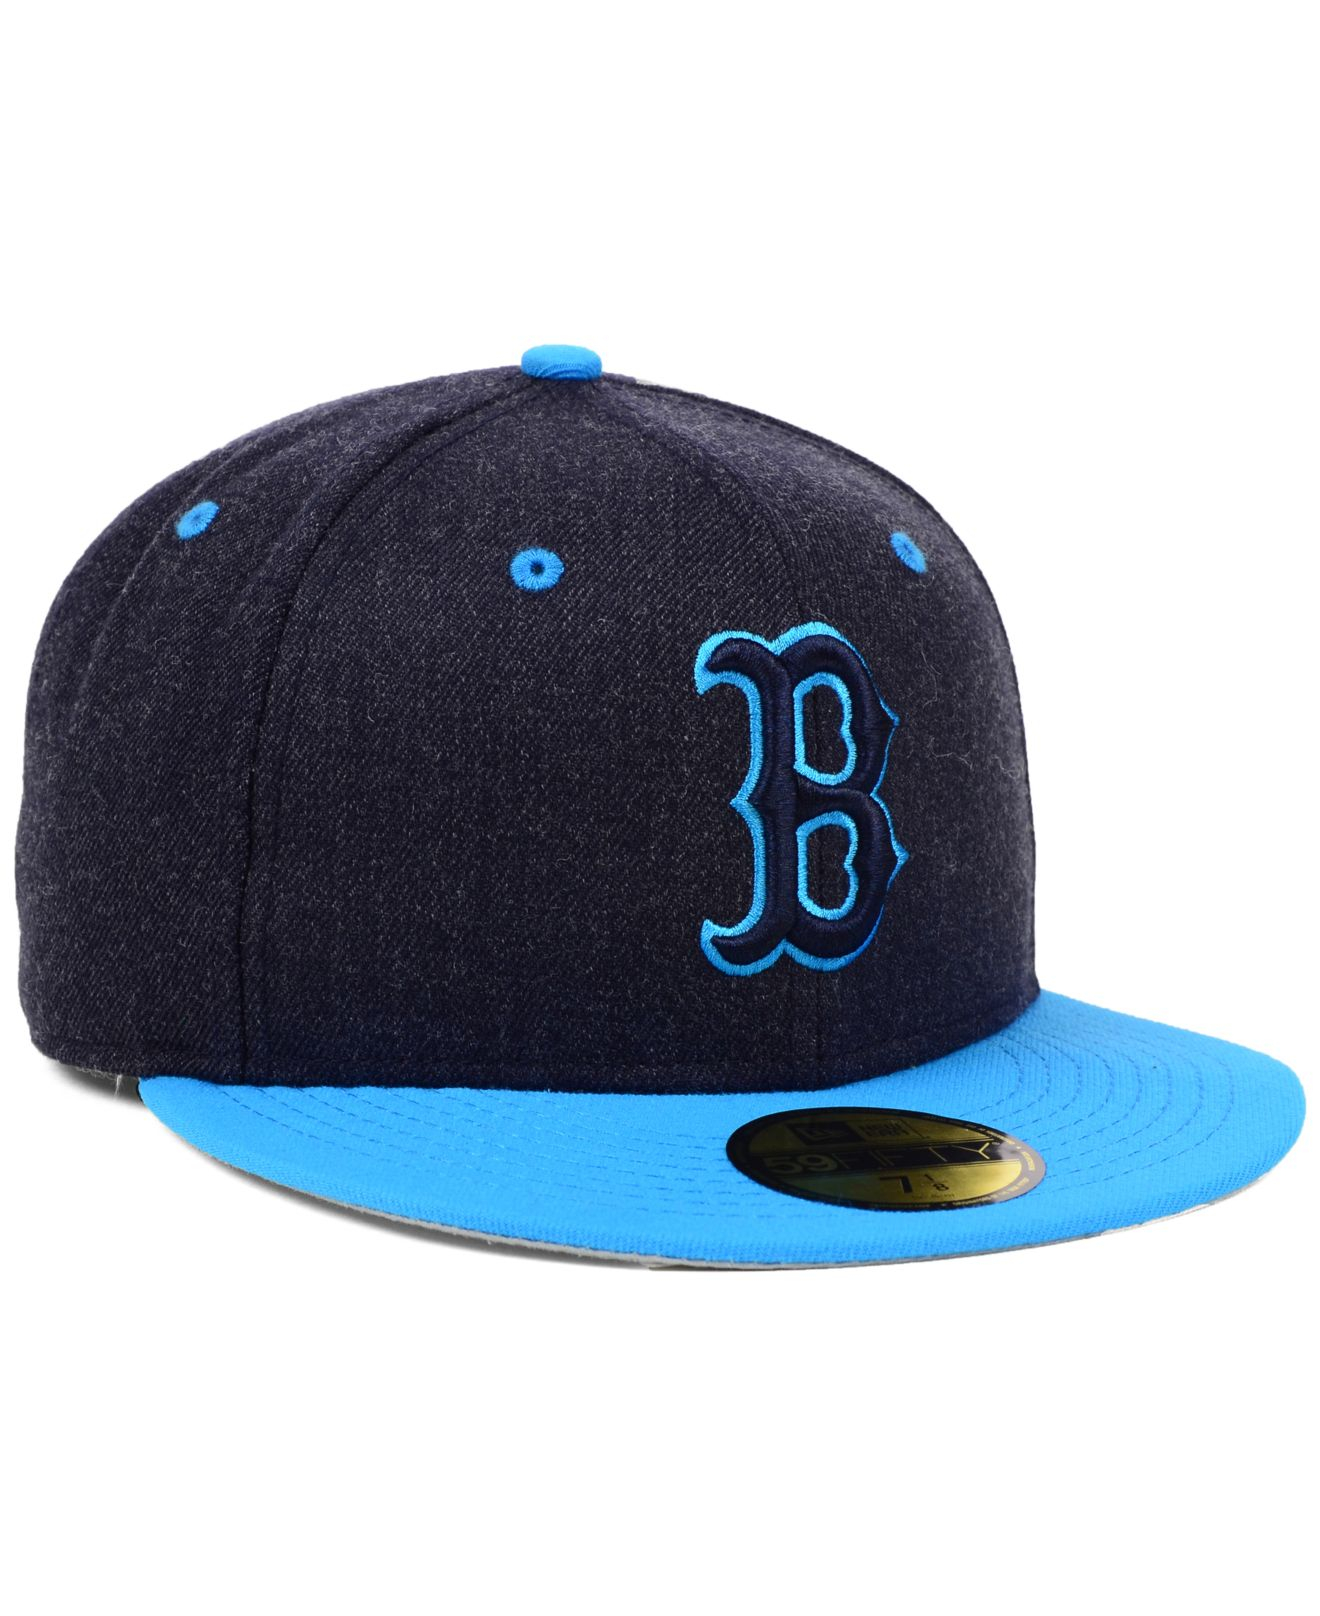 brand new 8c01c 49300 Lyst - KTZ Boston Red Sox Mlb Navy Heather 59Fifty Cap in Blue for Men